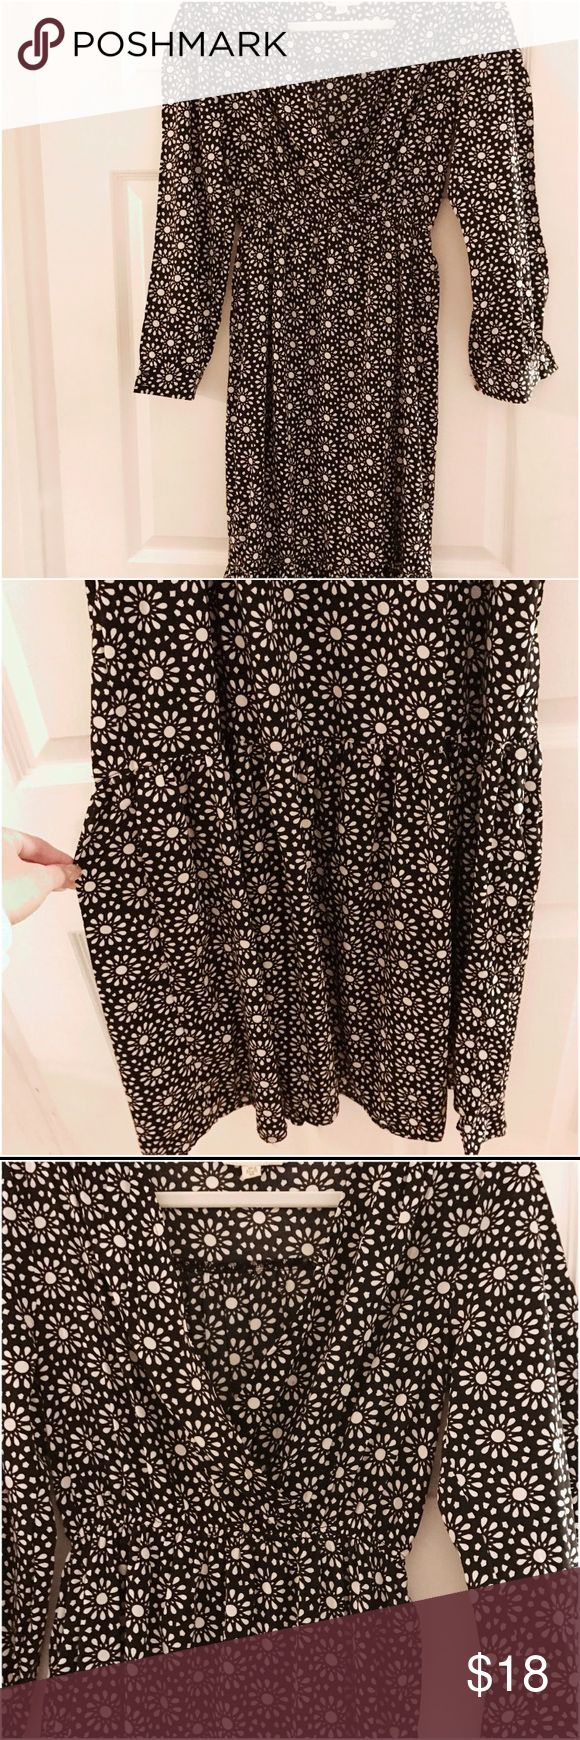 Black and White Print Maxi Dress!!! Purchased from ASOS!! Brand New Black & White Print Maxi Dress with Open Sleeves!! ASOS Dresses Maxi